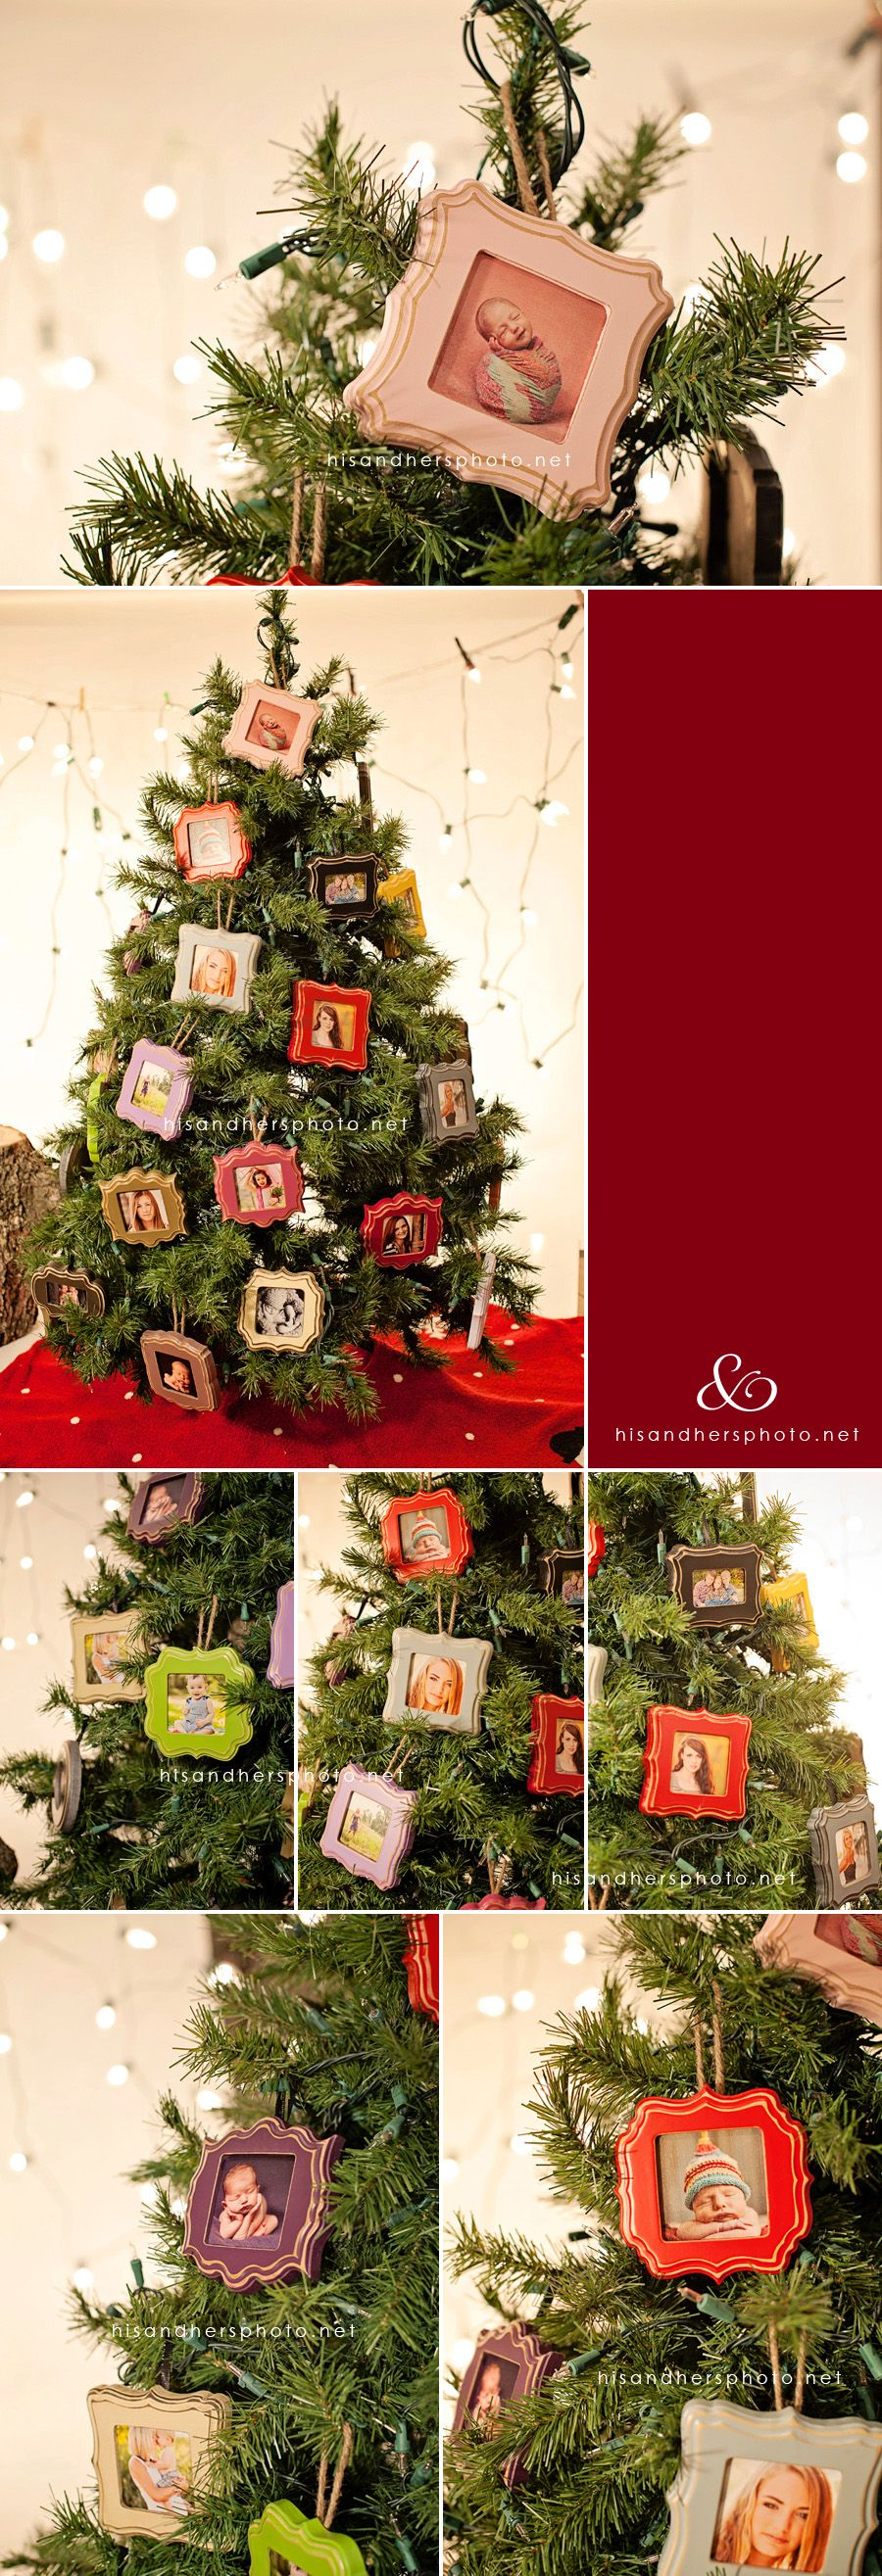 Framed Christmas Ornaments – Perfect Holiday Gift!